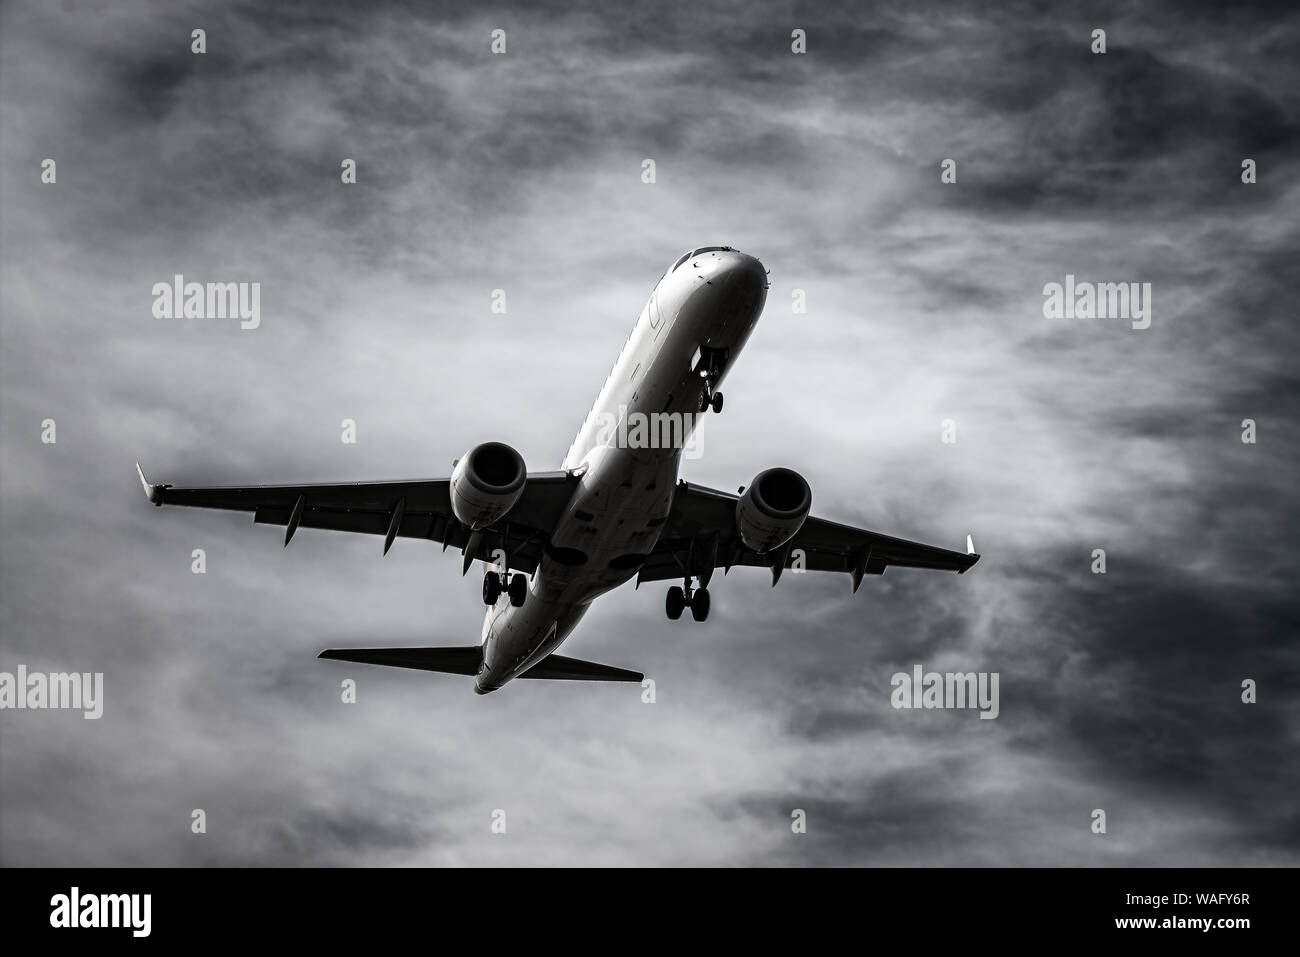 Airplane landing in front of dramatic sky in black and white Stock Photo